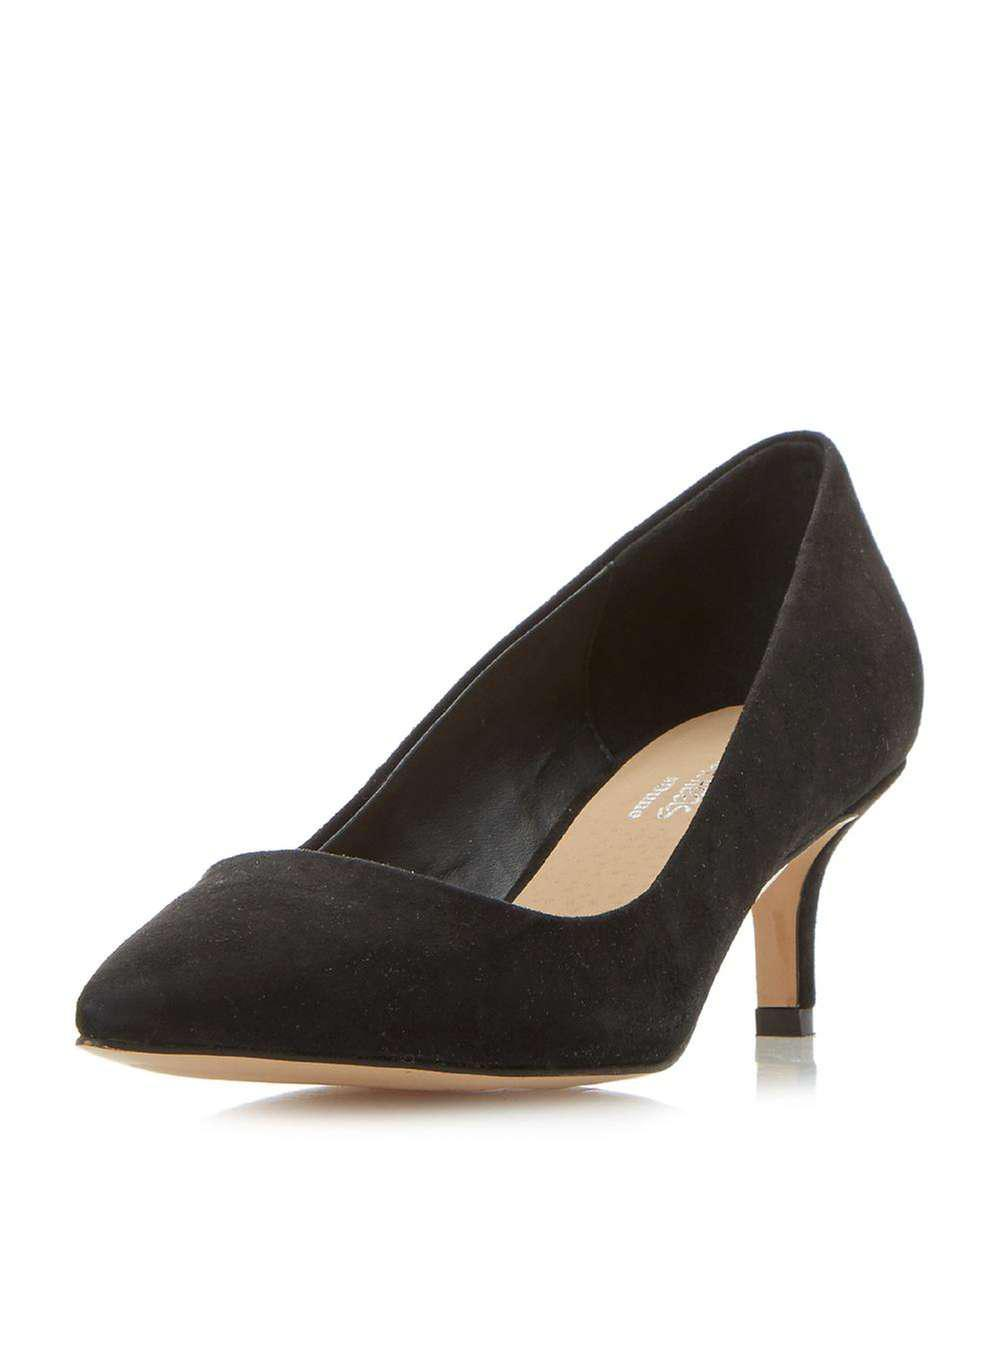 Vente Confortable Clairance Sneakernews Dorothy Perkins Head Over Heels by Dune Black 'Addore' High Heel Court Shoes DUwsgpE64p